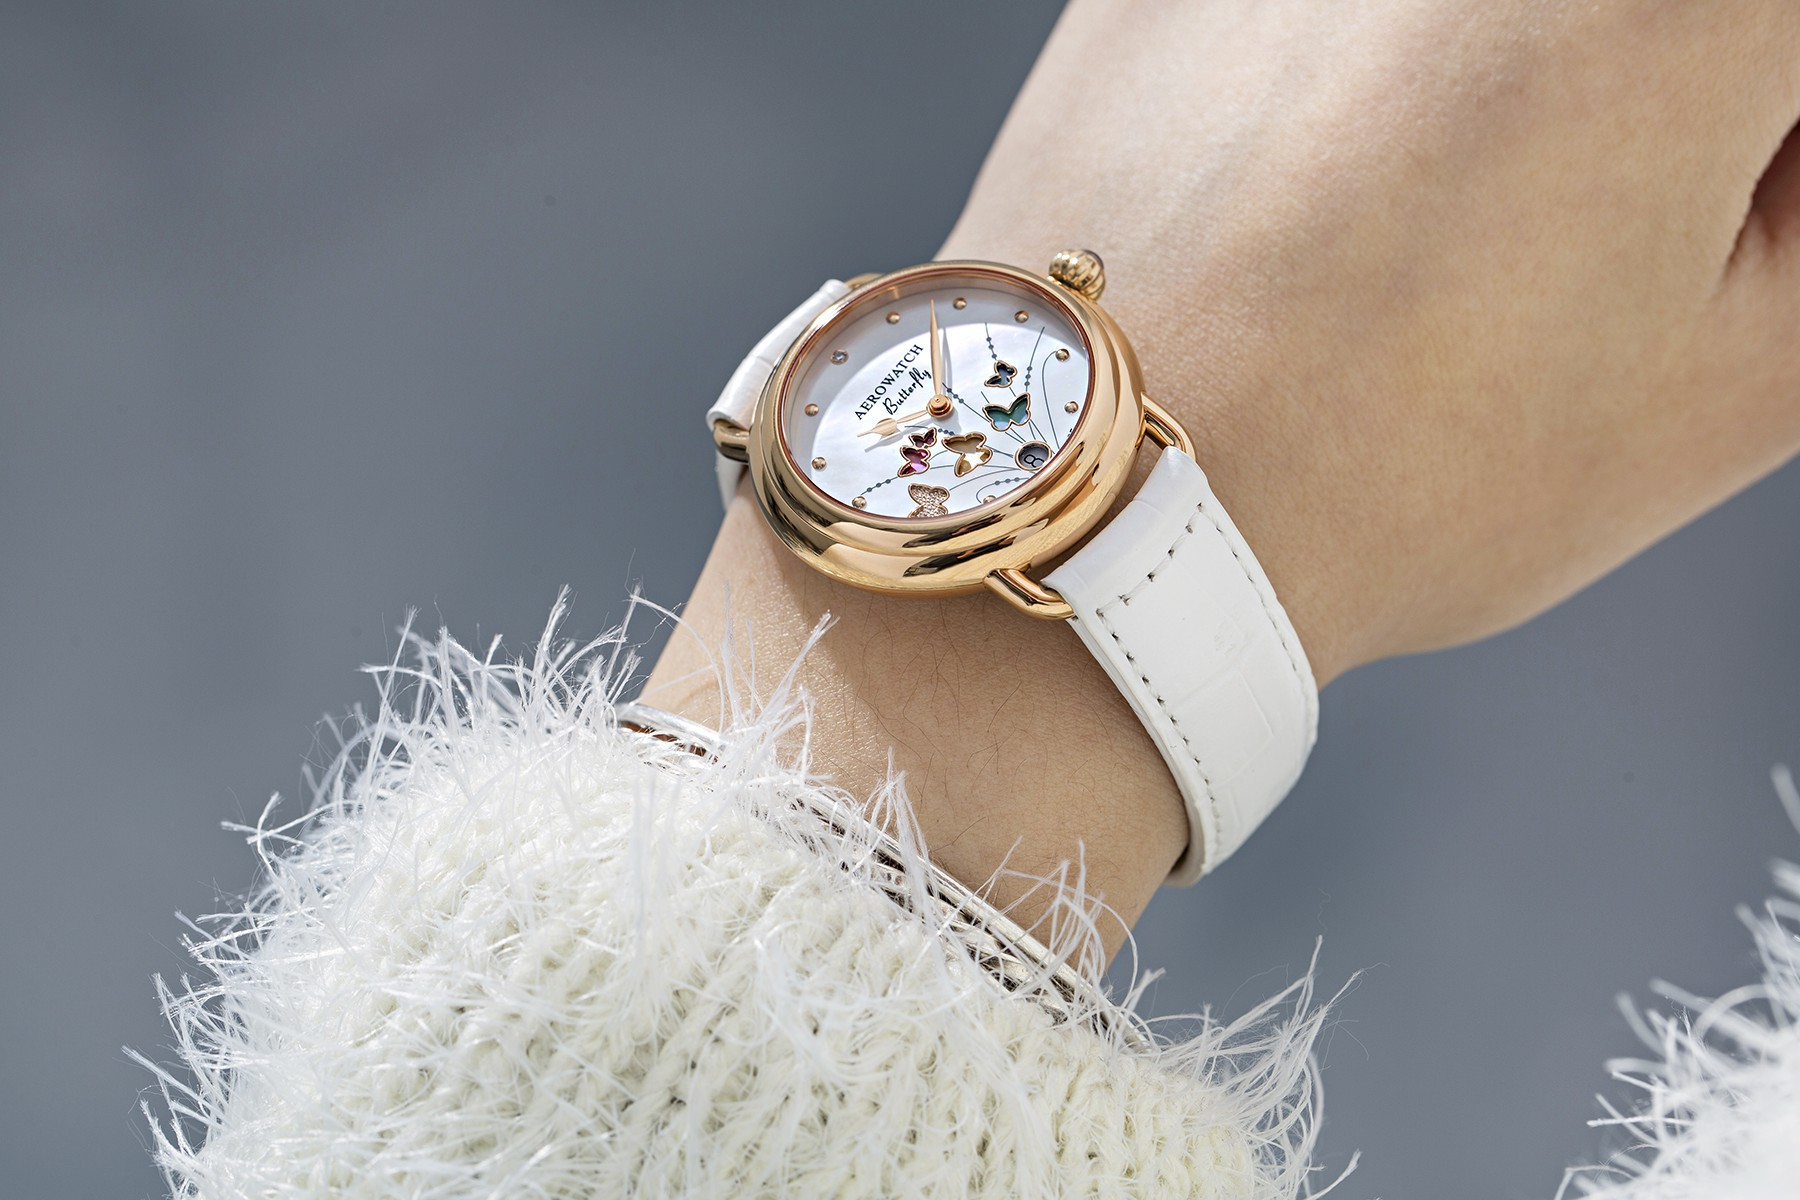 Aerowatch 1942 Butterfly Limited Edition Lady